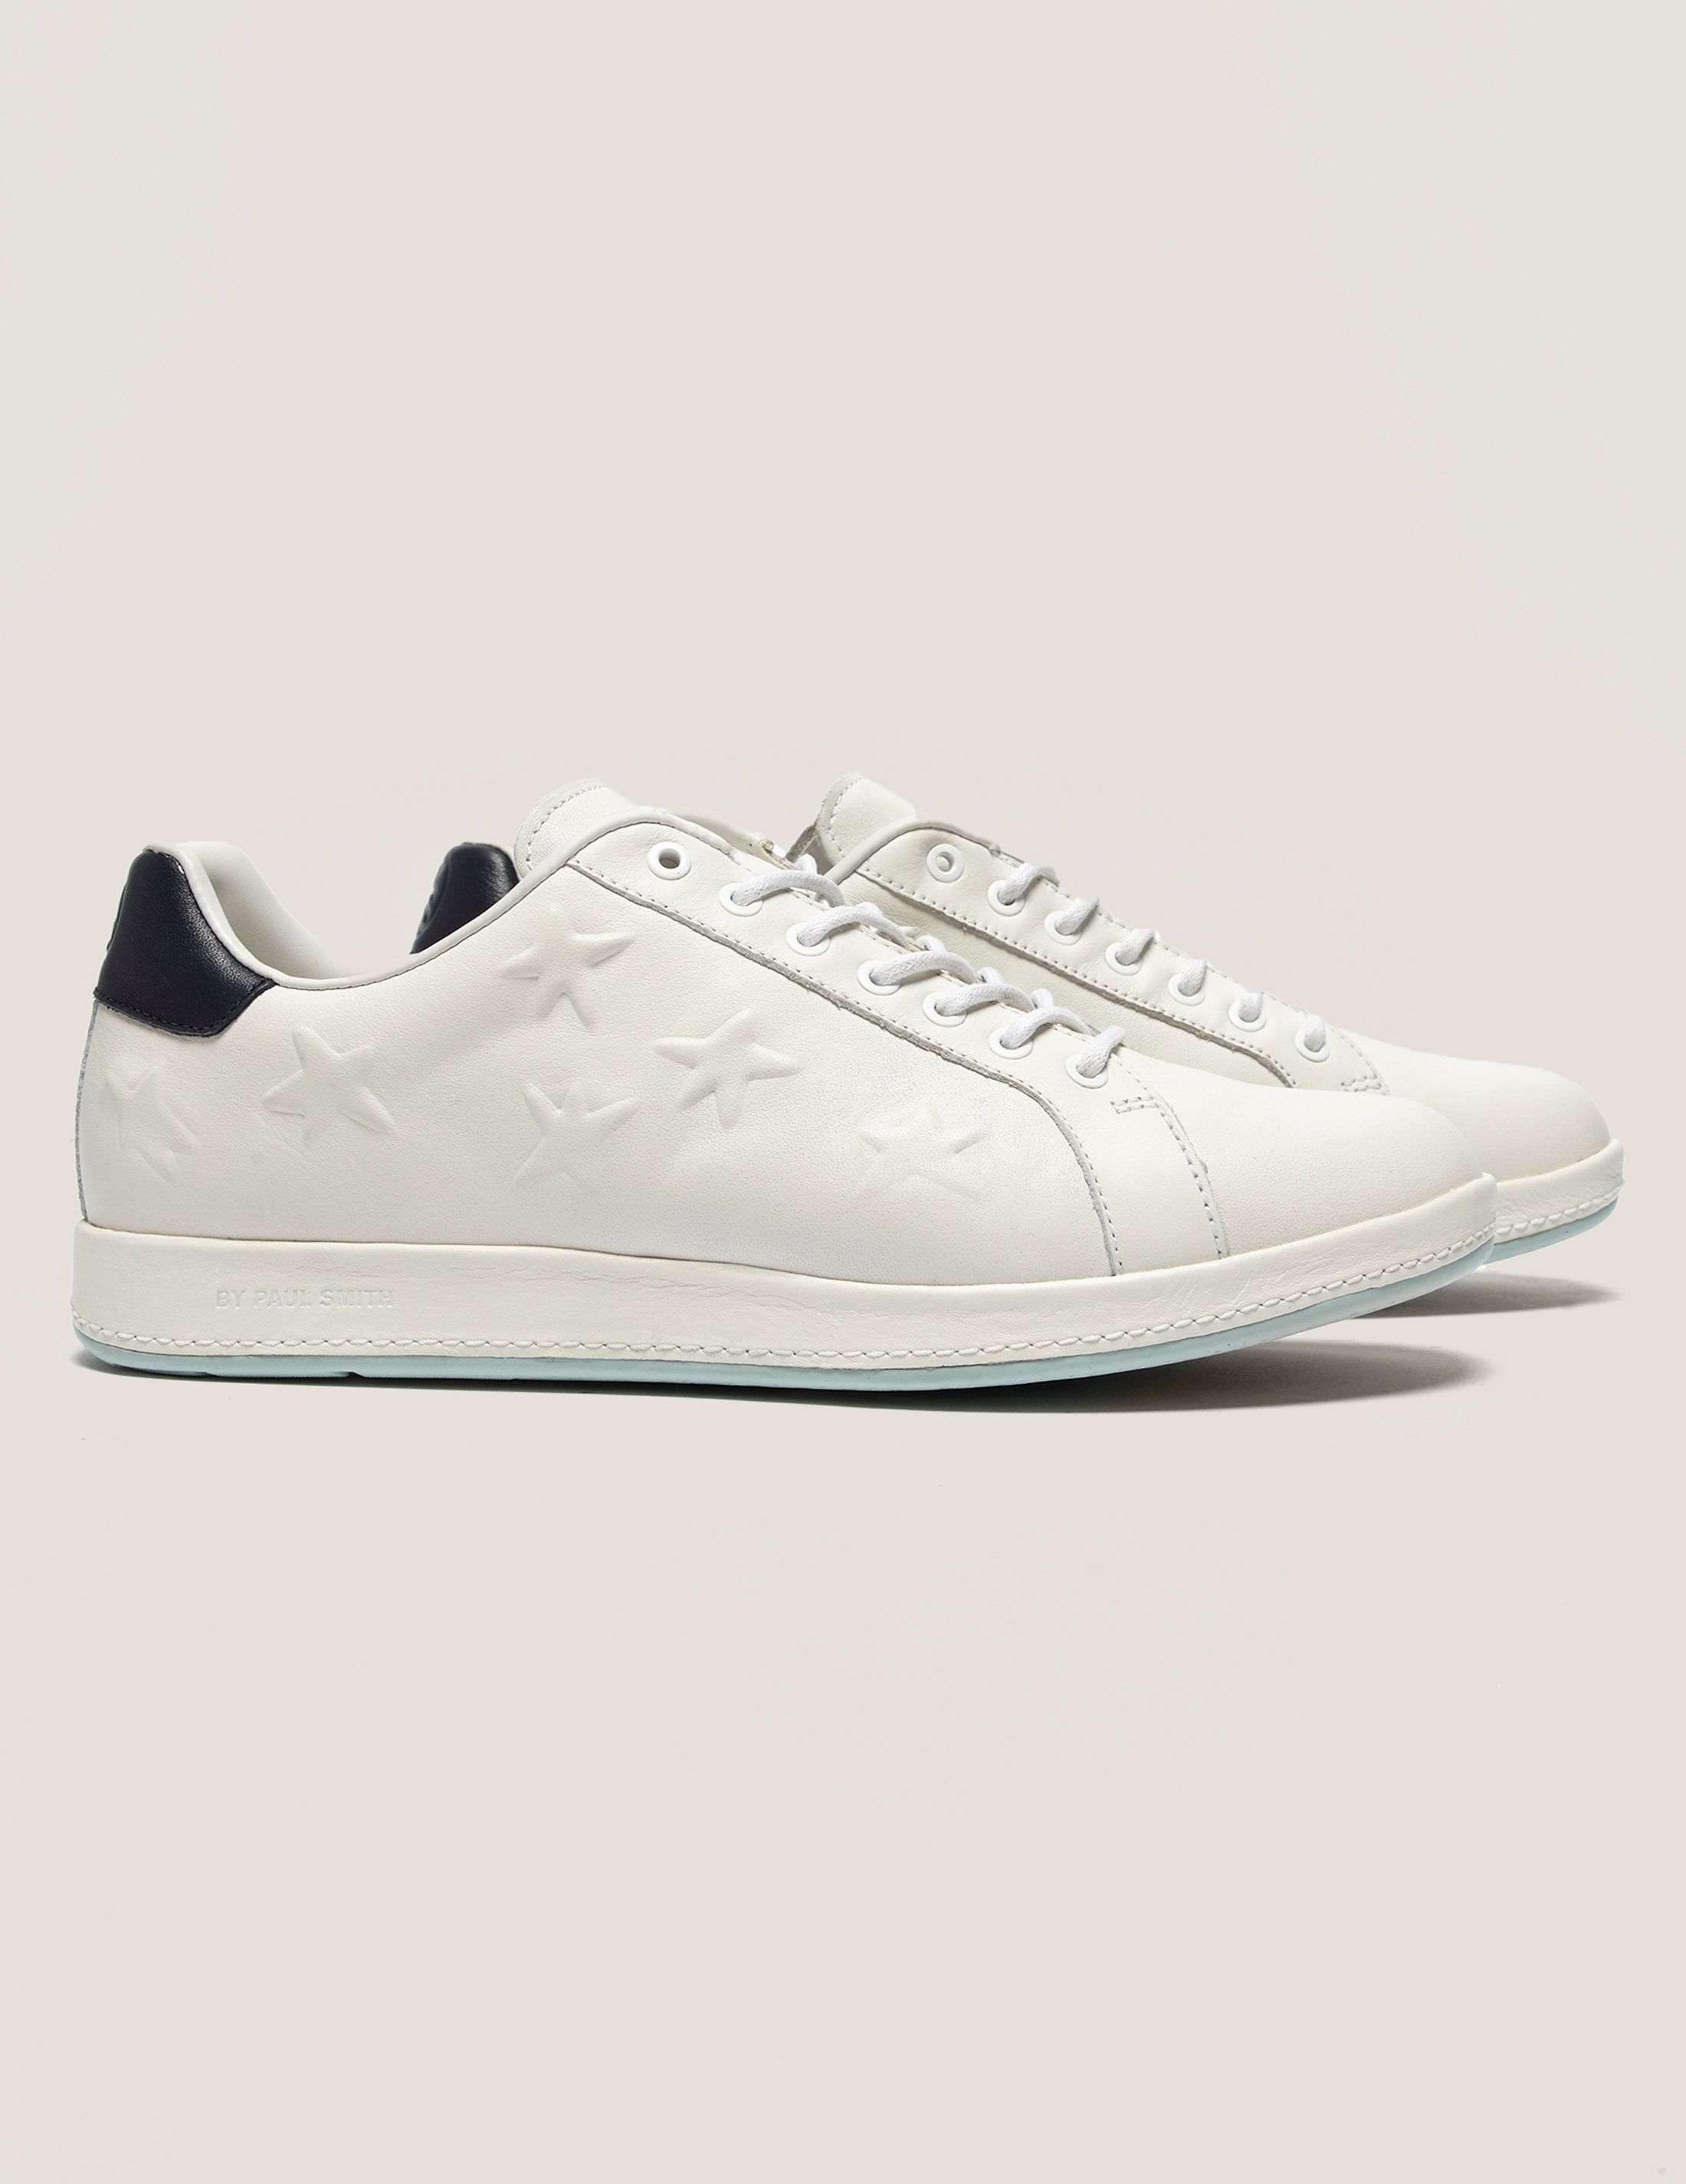 Paul Smith Lapin Trainer